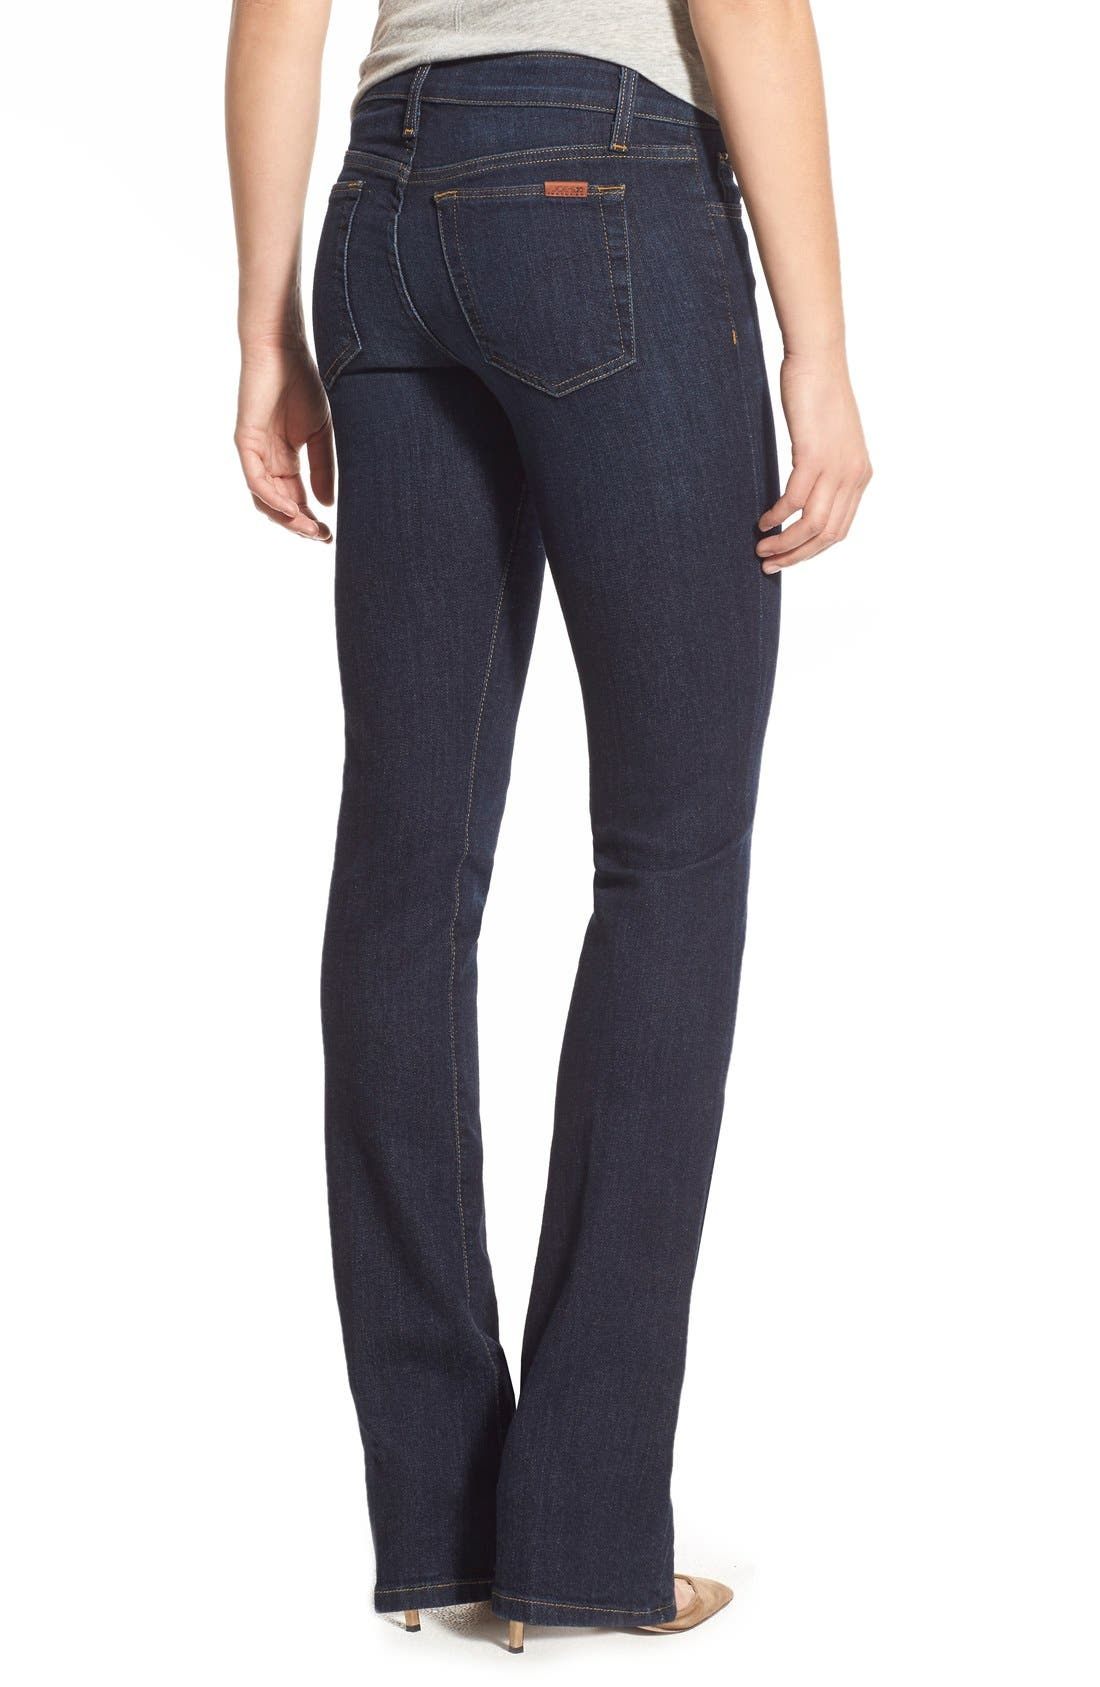 JOE'S, Honey Curvy Bootcut Jeans, Alternate thumbnail 2, color, RIKKI